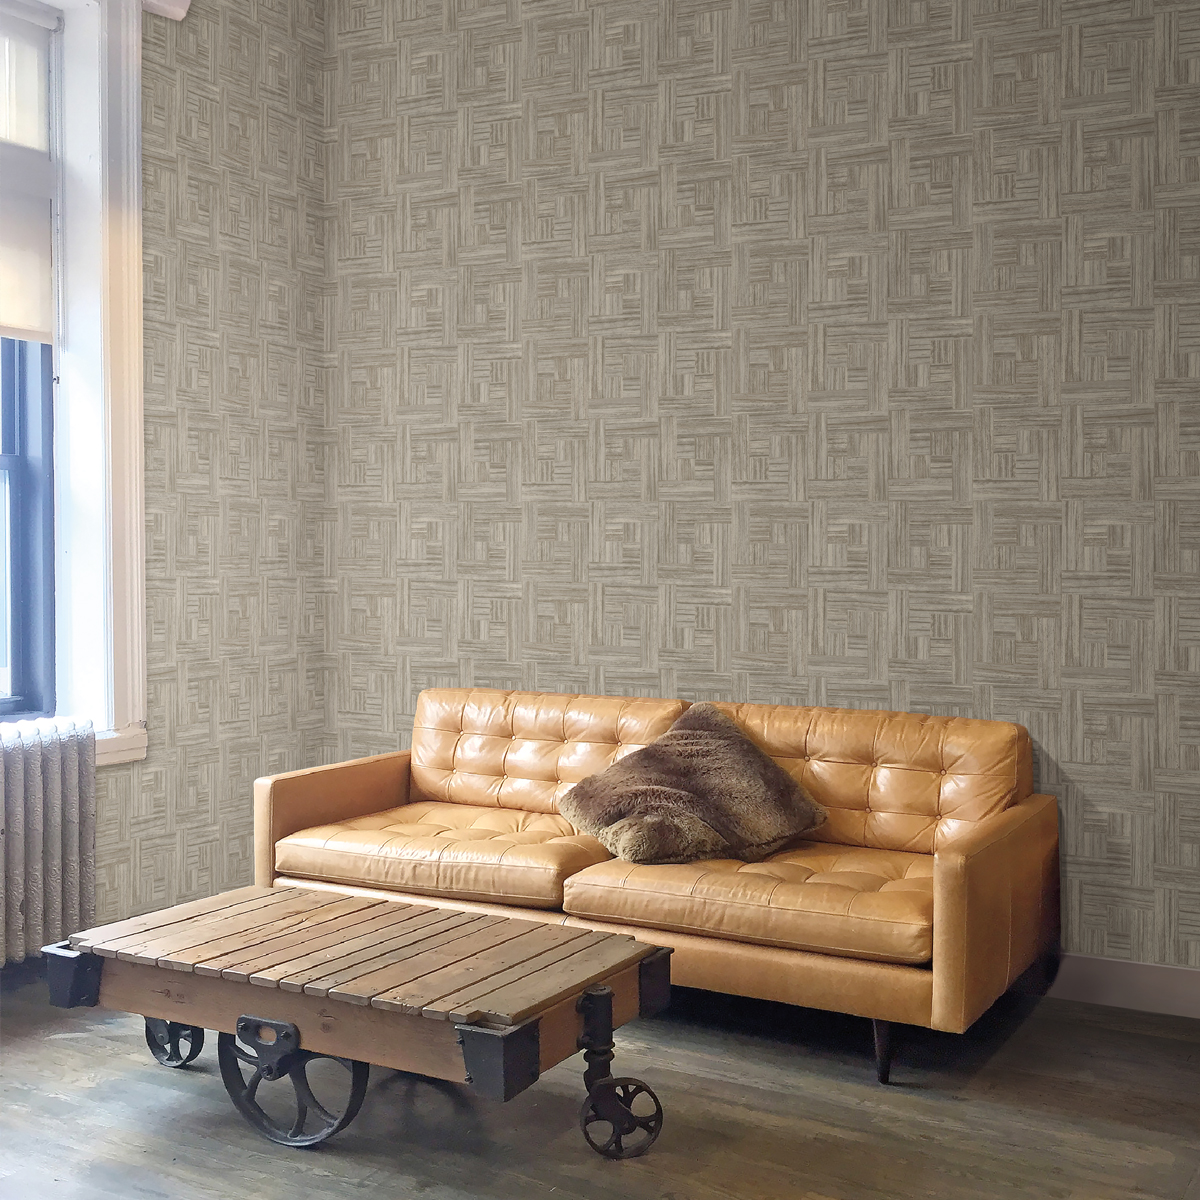 Carpentry Wallcovering by York Contract Design Gallery